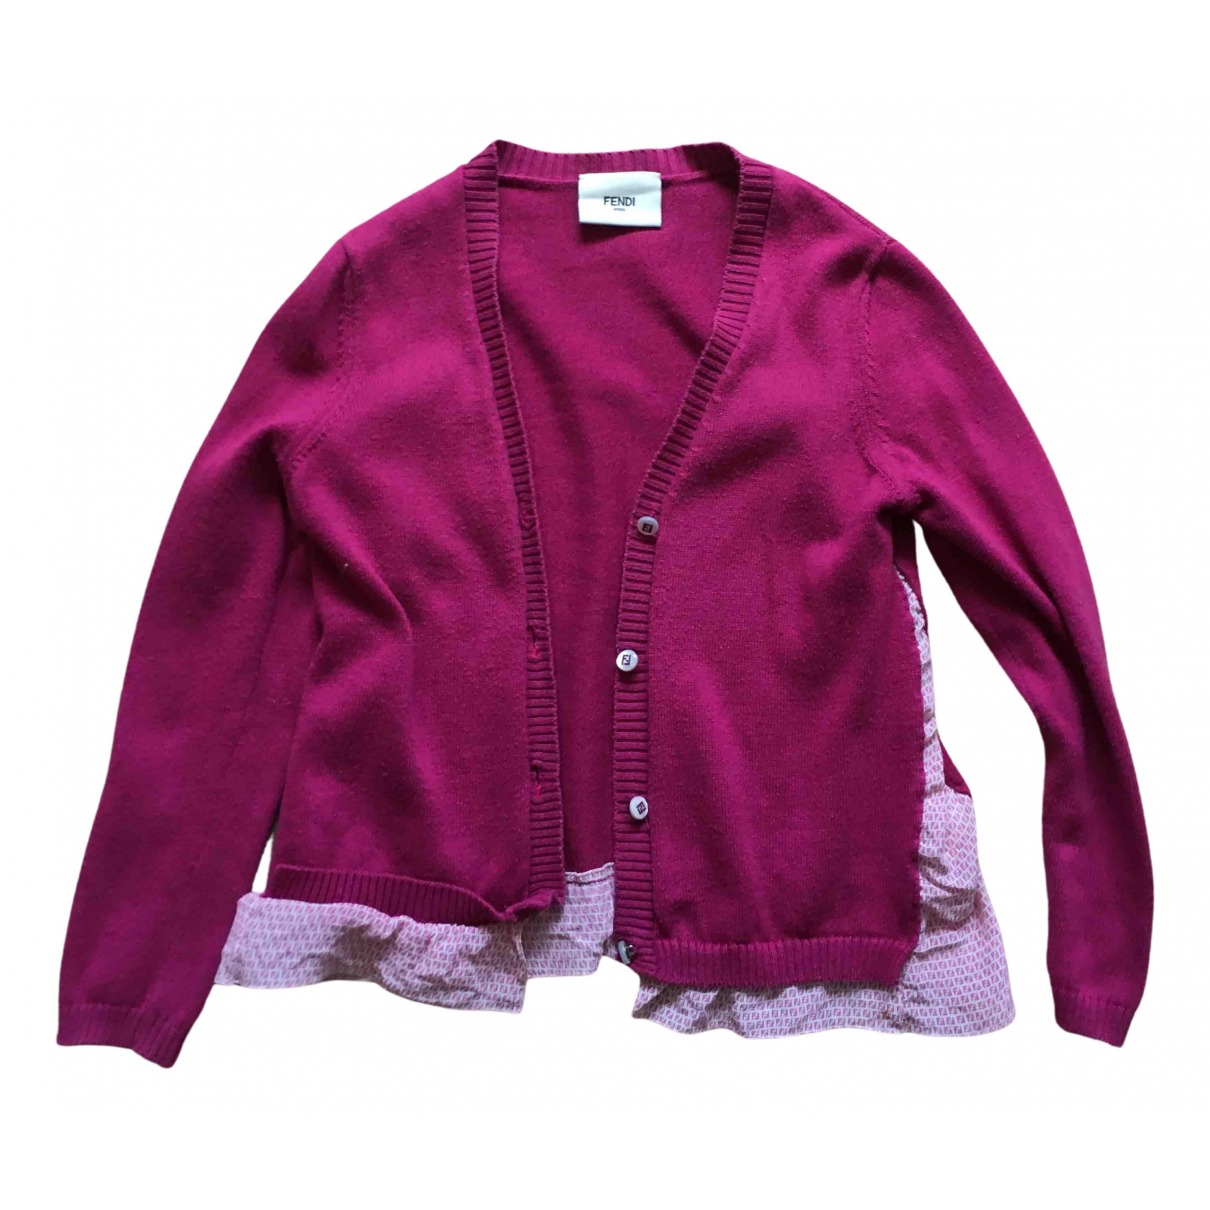 Fendi N Pink Cotton Knitwear for Kids 4 years - up to 102cm FR